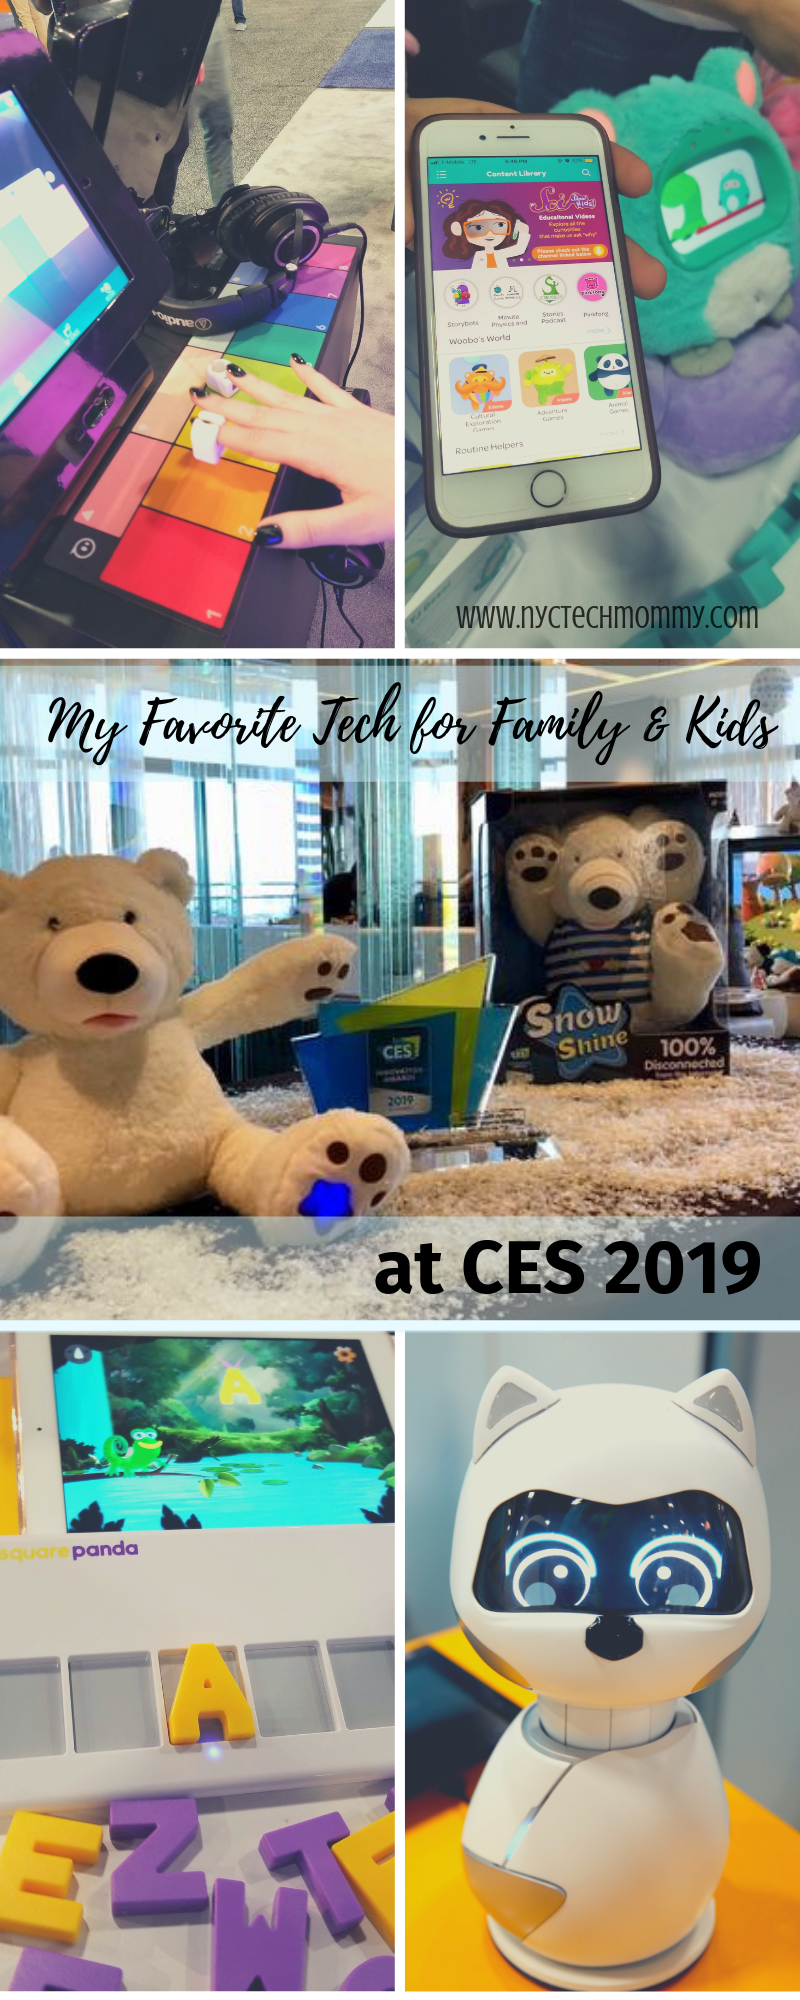 Tech for Family and Kids at CES 2019